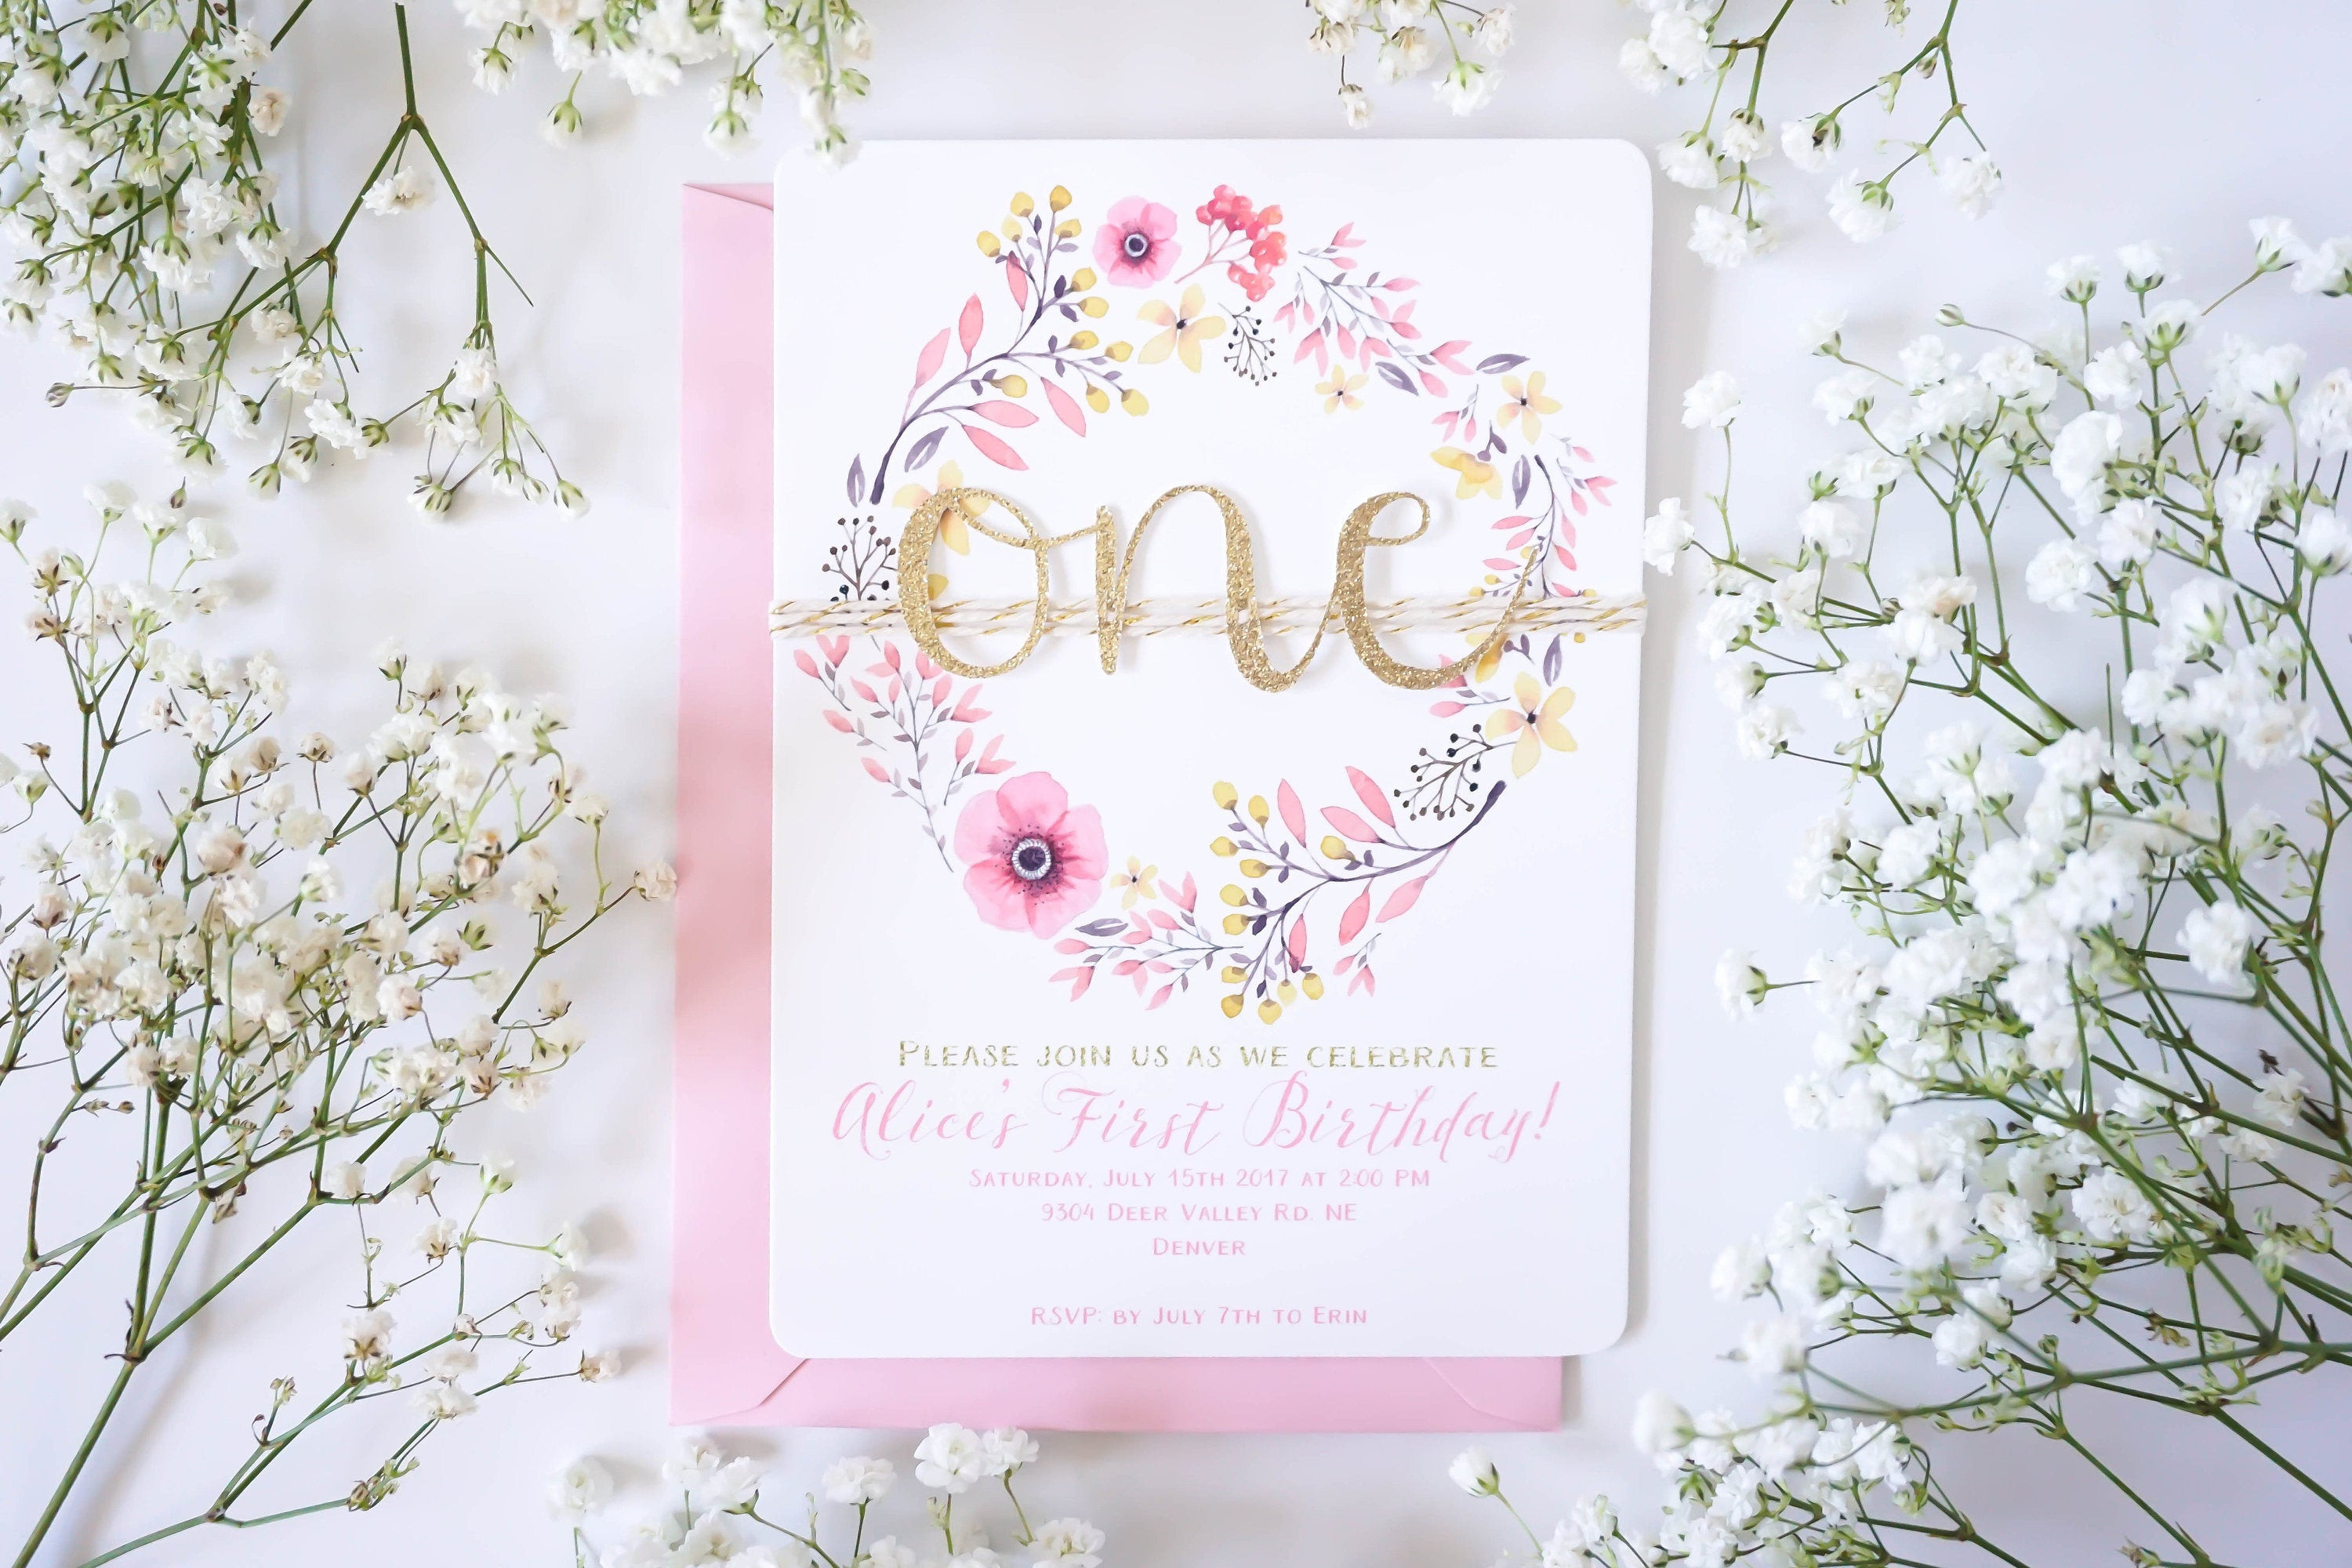 Best ideas about Floral Birthday Invitations . Save or Pin Boho first birthday invitation Floral 1st Birthday Now.